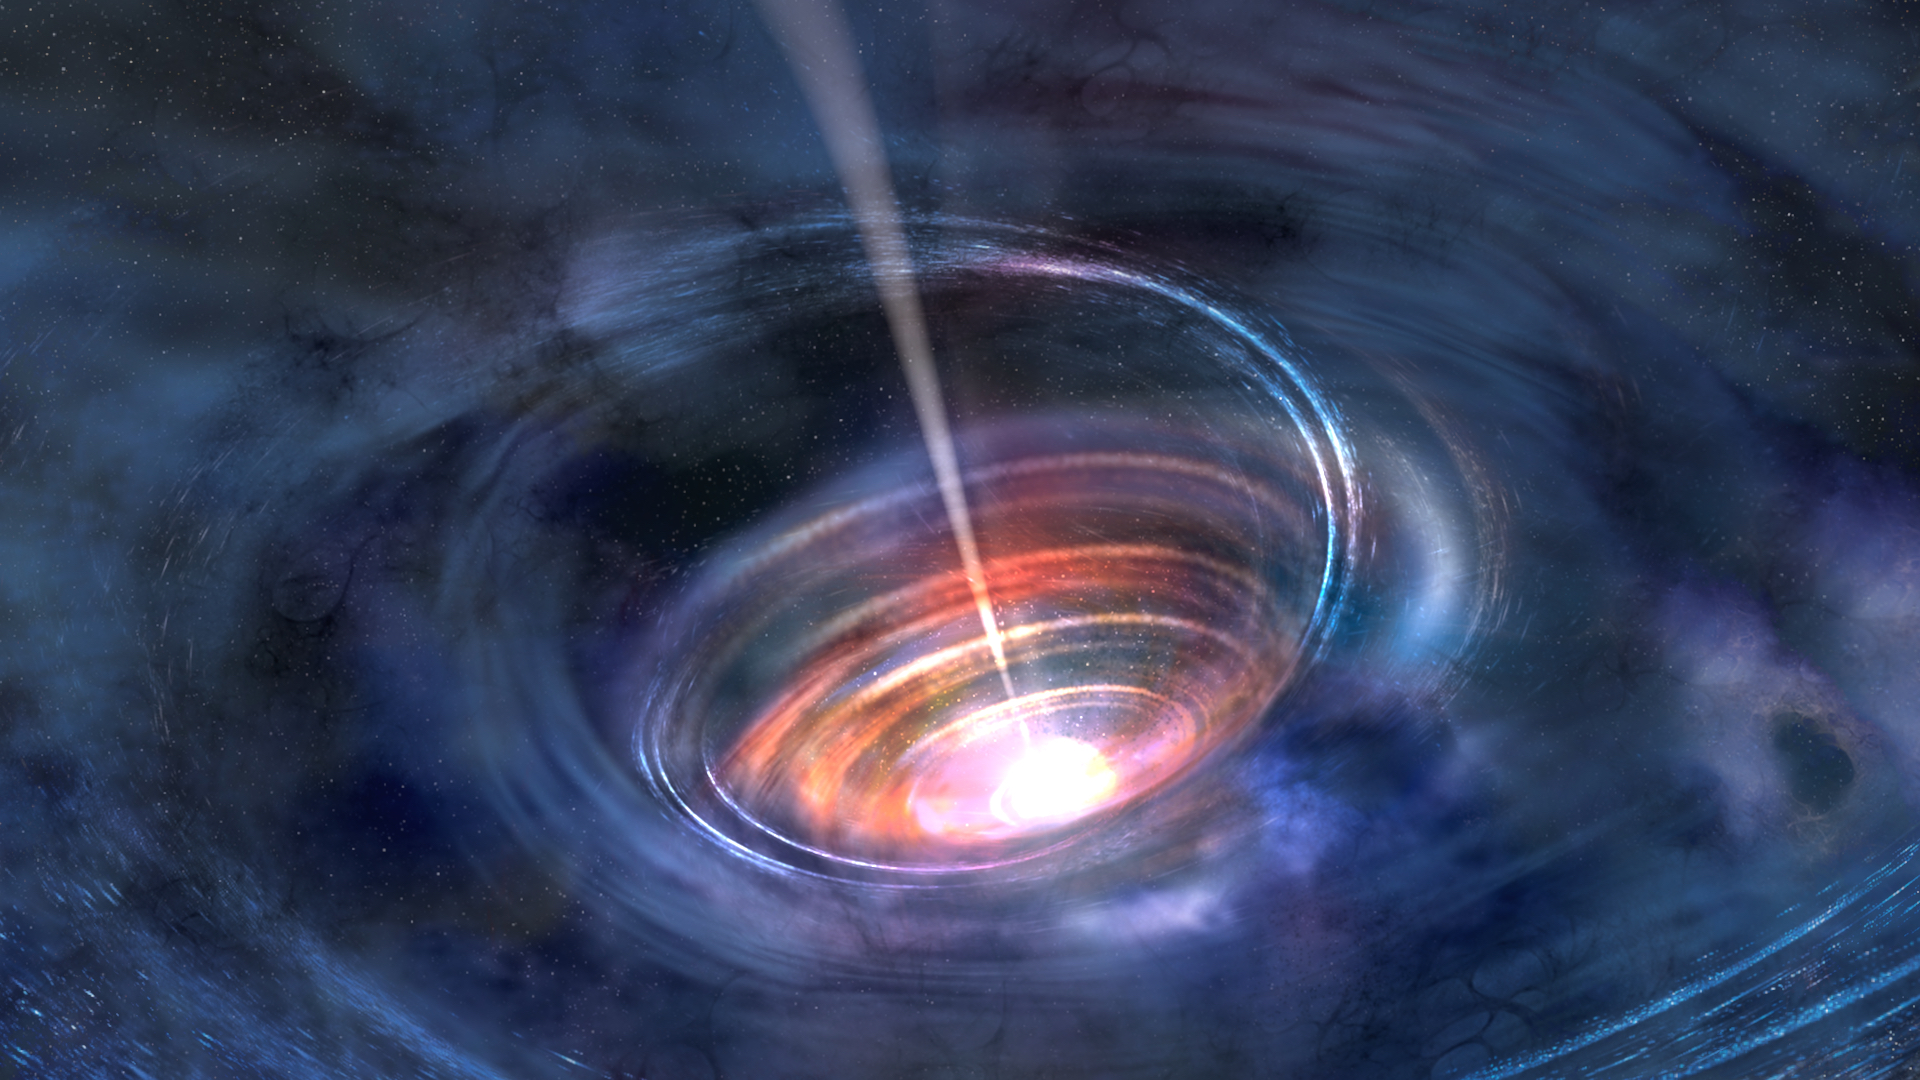 Caption: Super-massive black hole (artist's rendering)., Credit: NASA